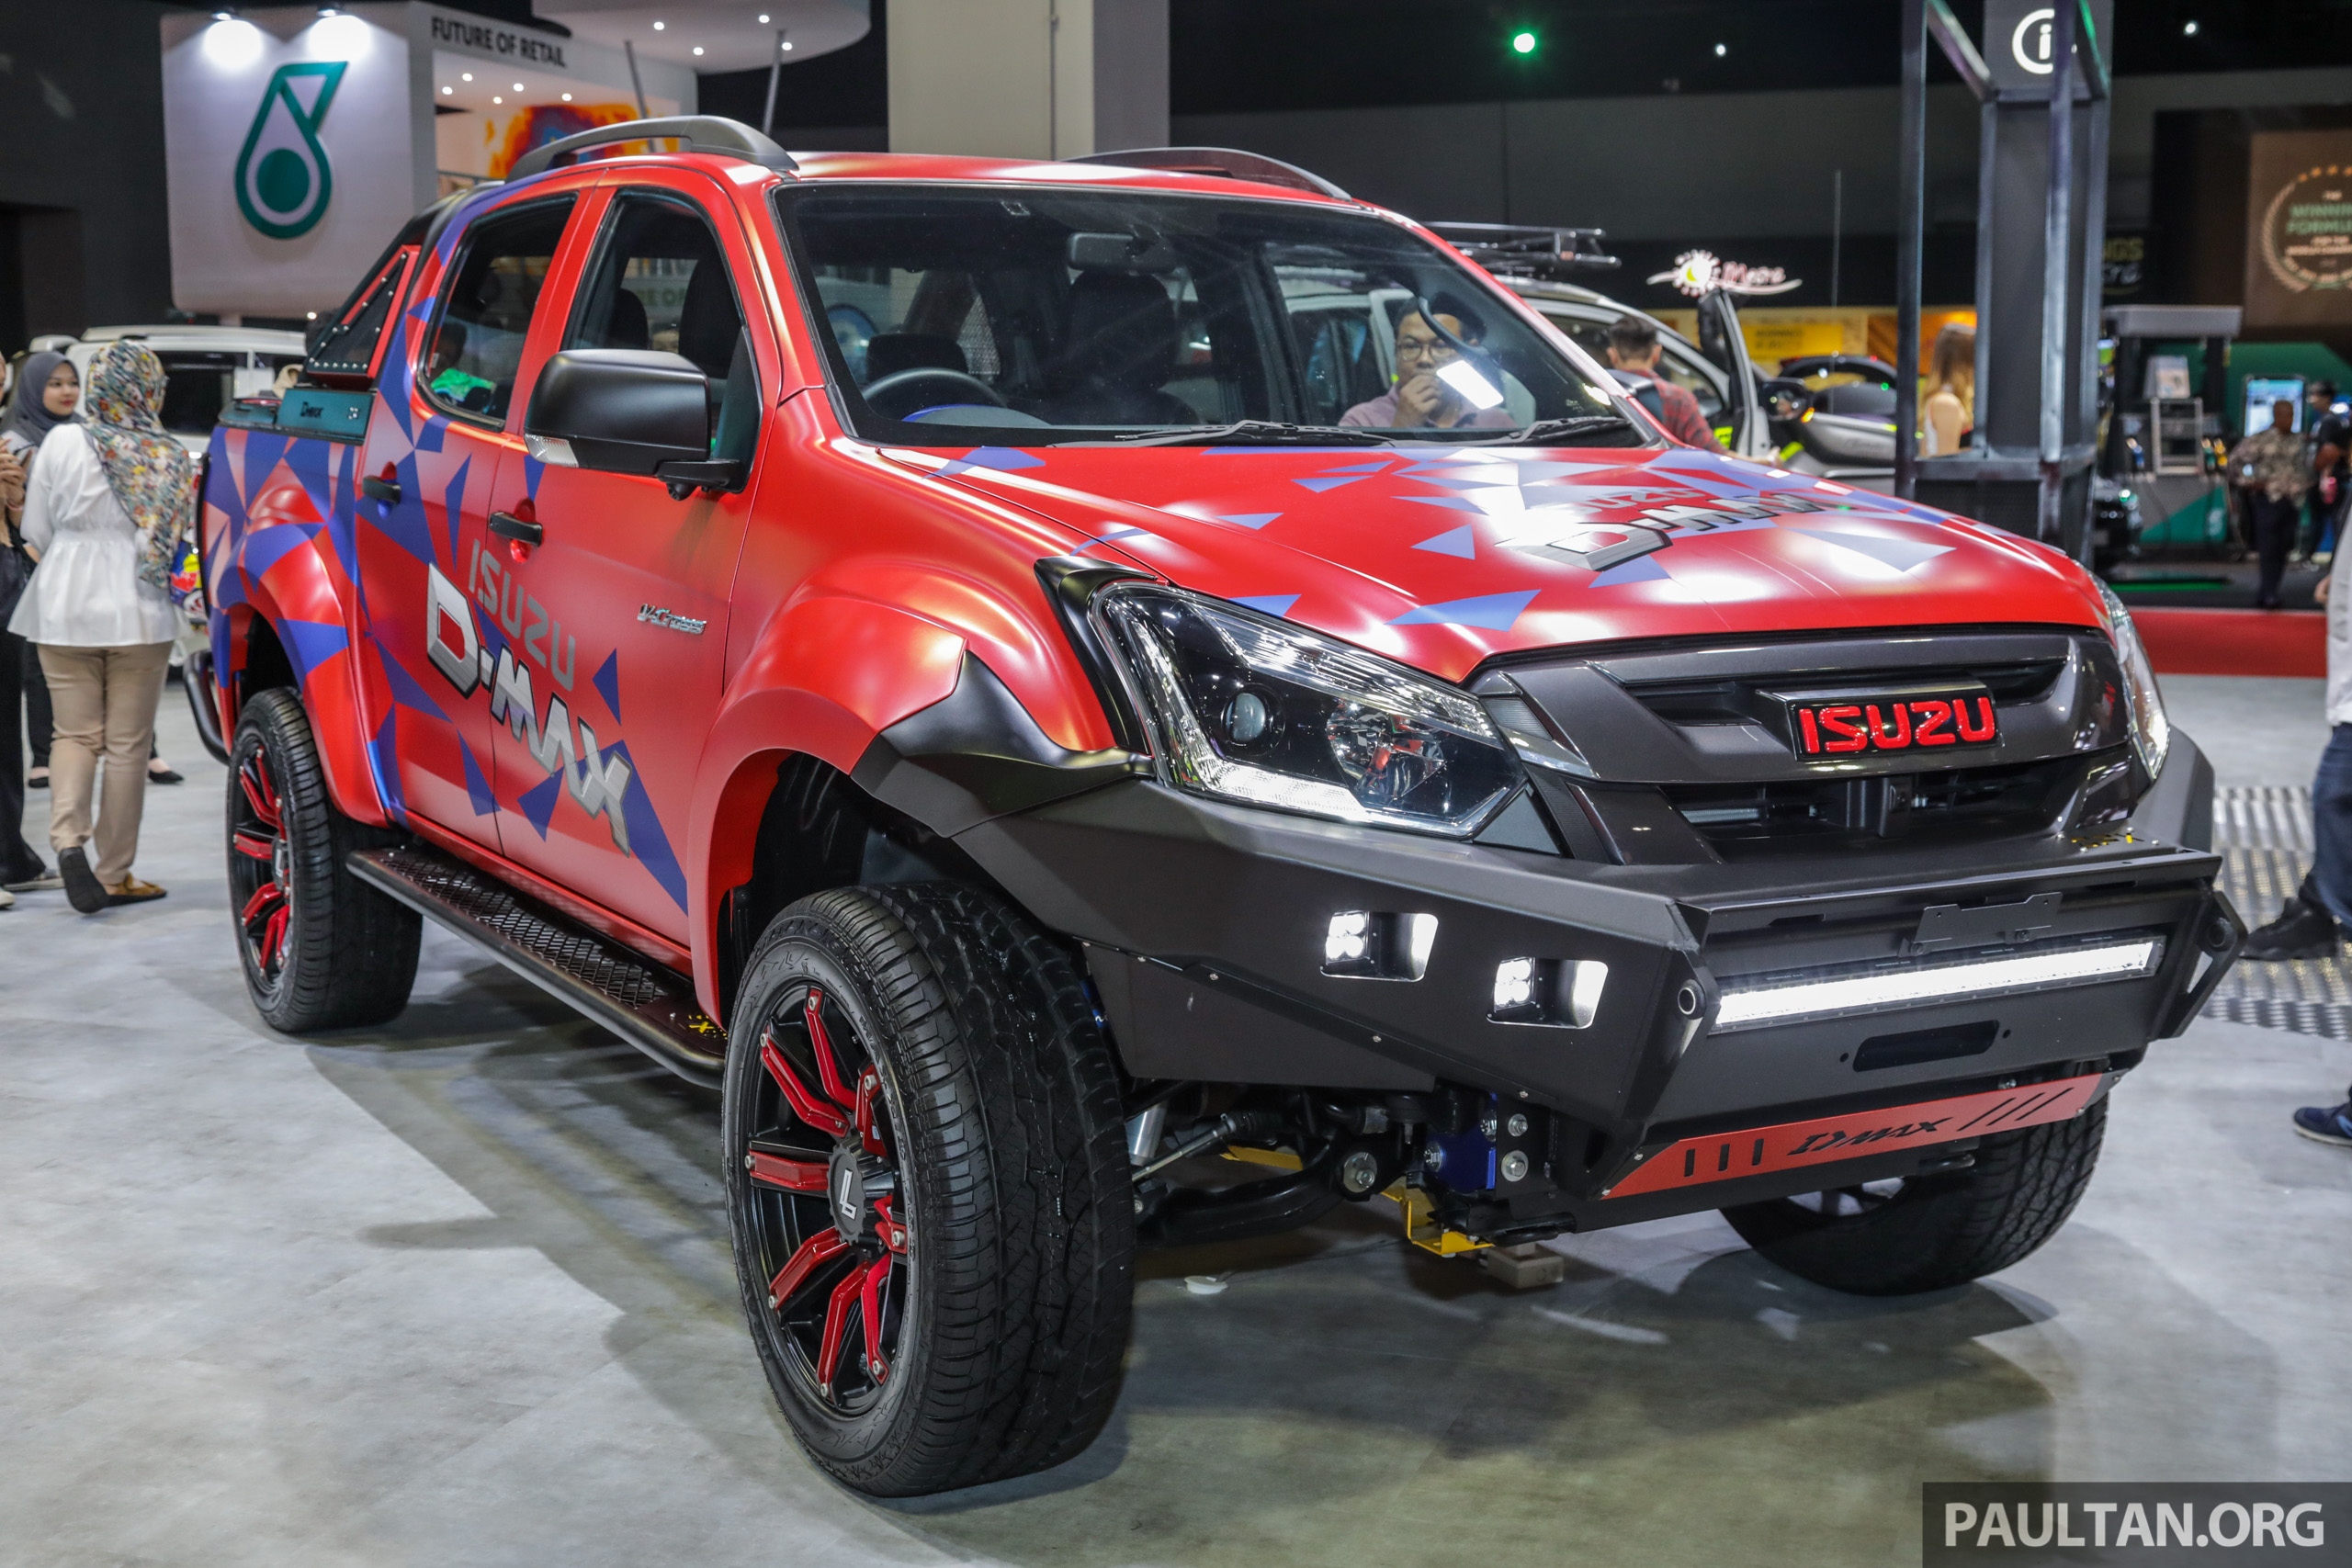 Accessories Isuzu Mux Klims18 19l Ddi Bluepower Engine D Max And Mu X Concepts On